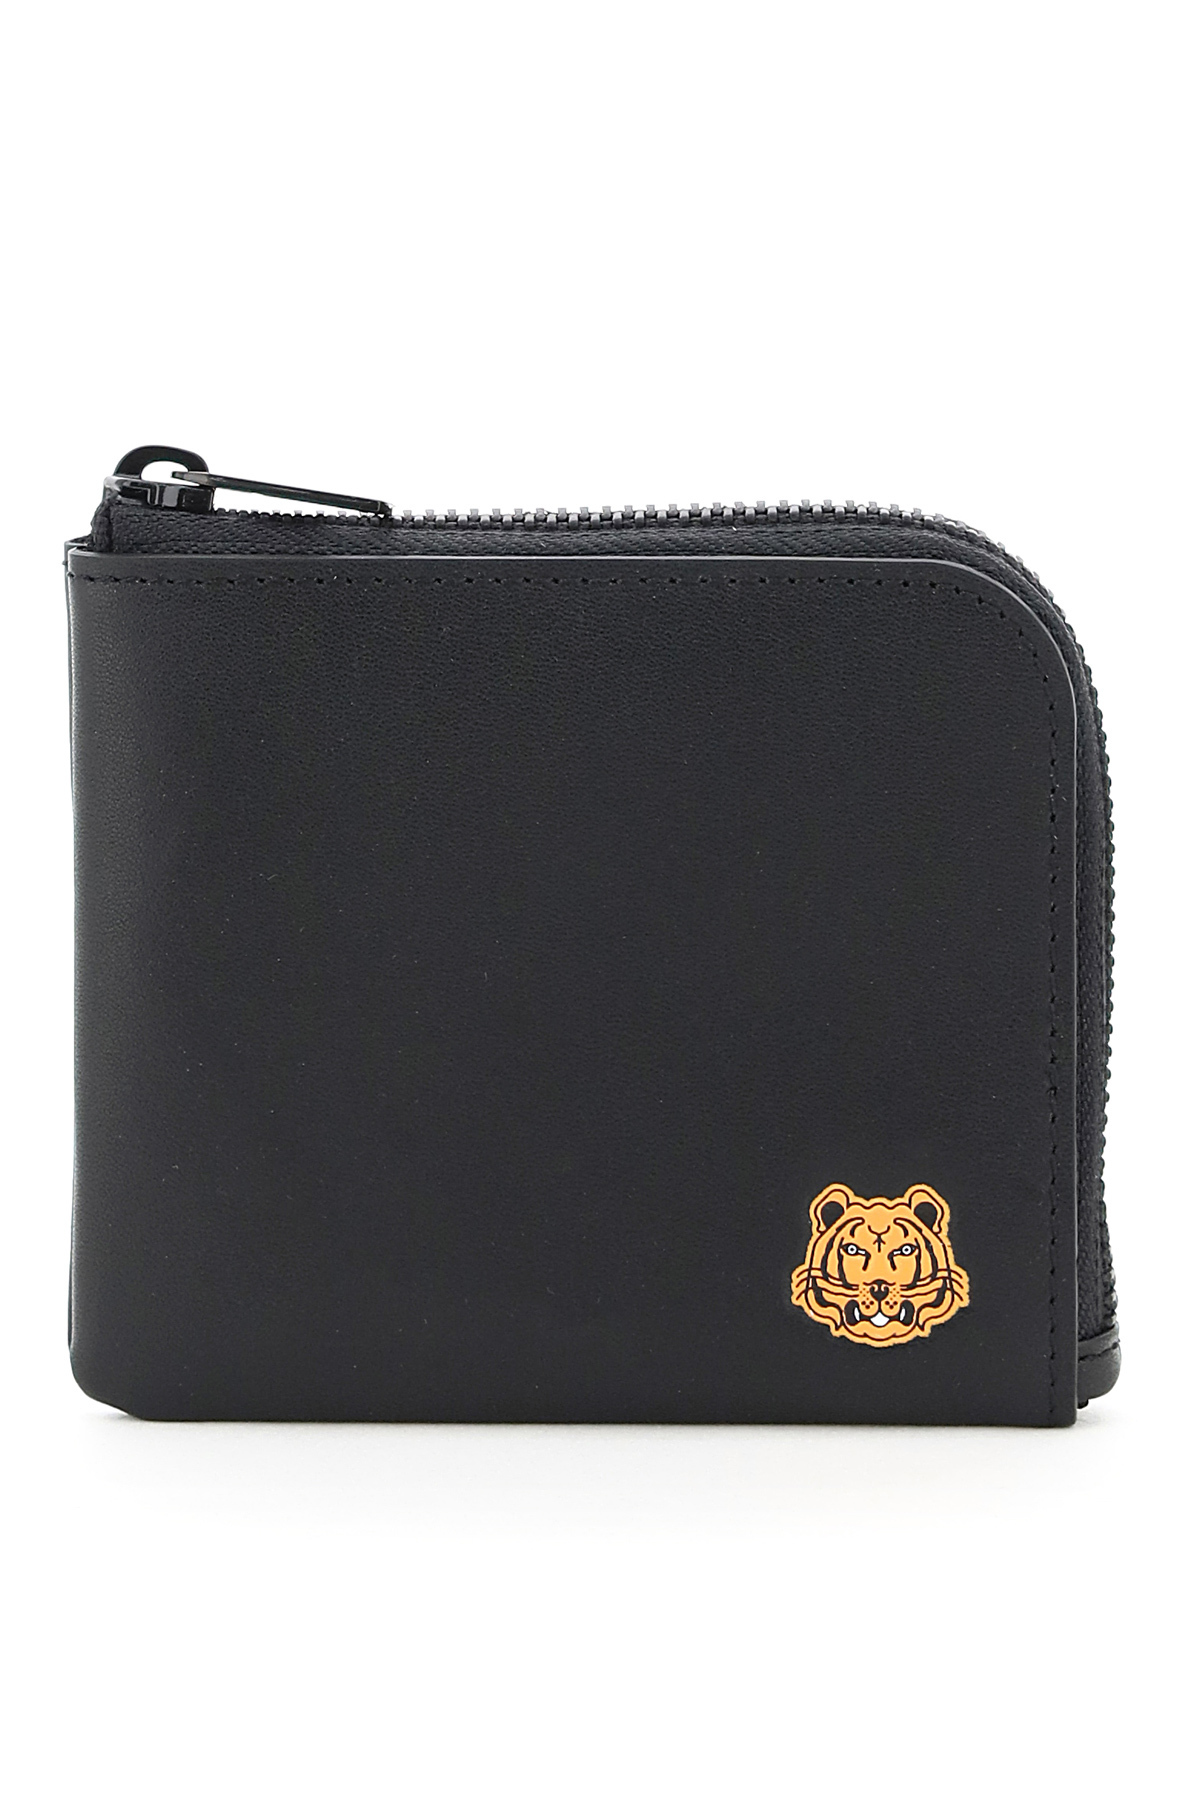 KENZO SMALL ZIP WALLET WITH TIGER OS Black, Orange Leather